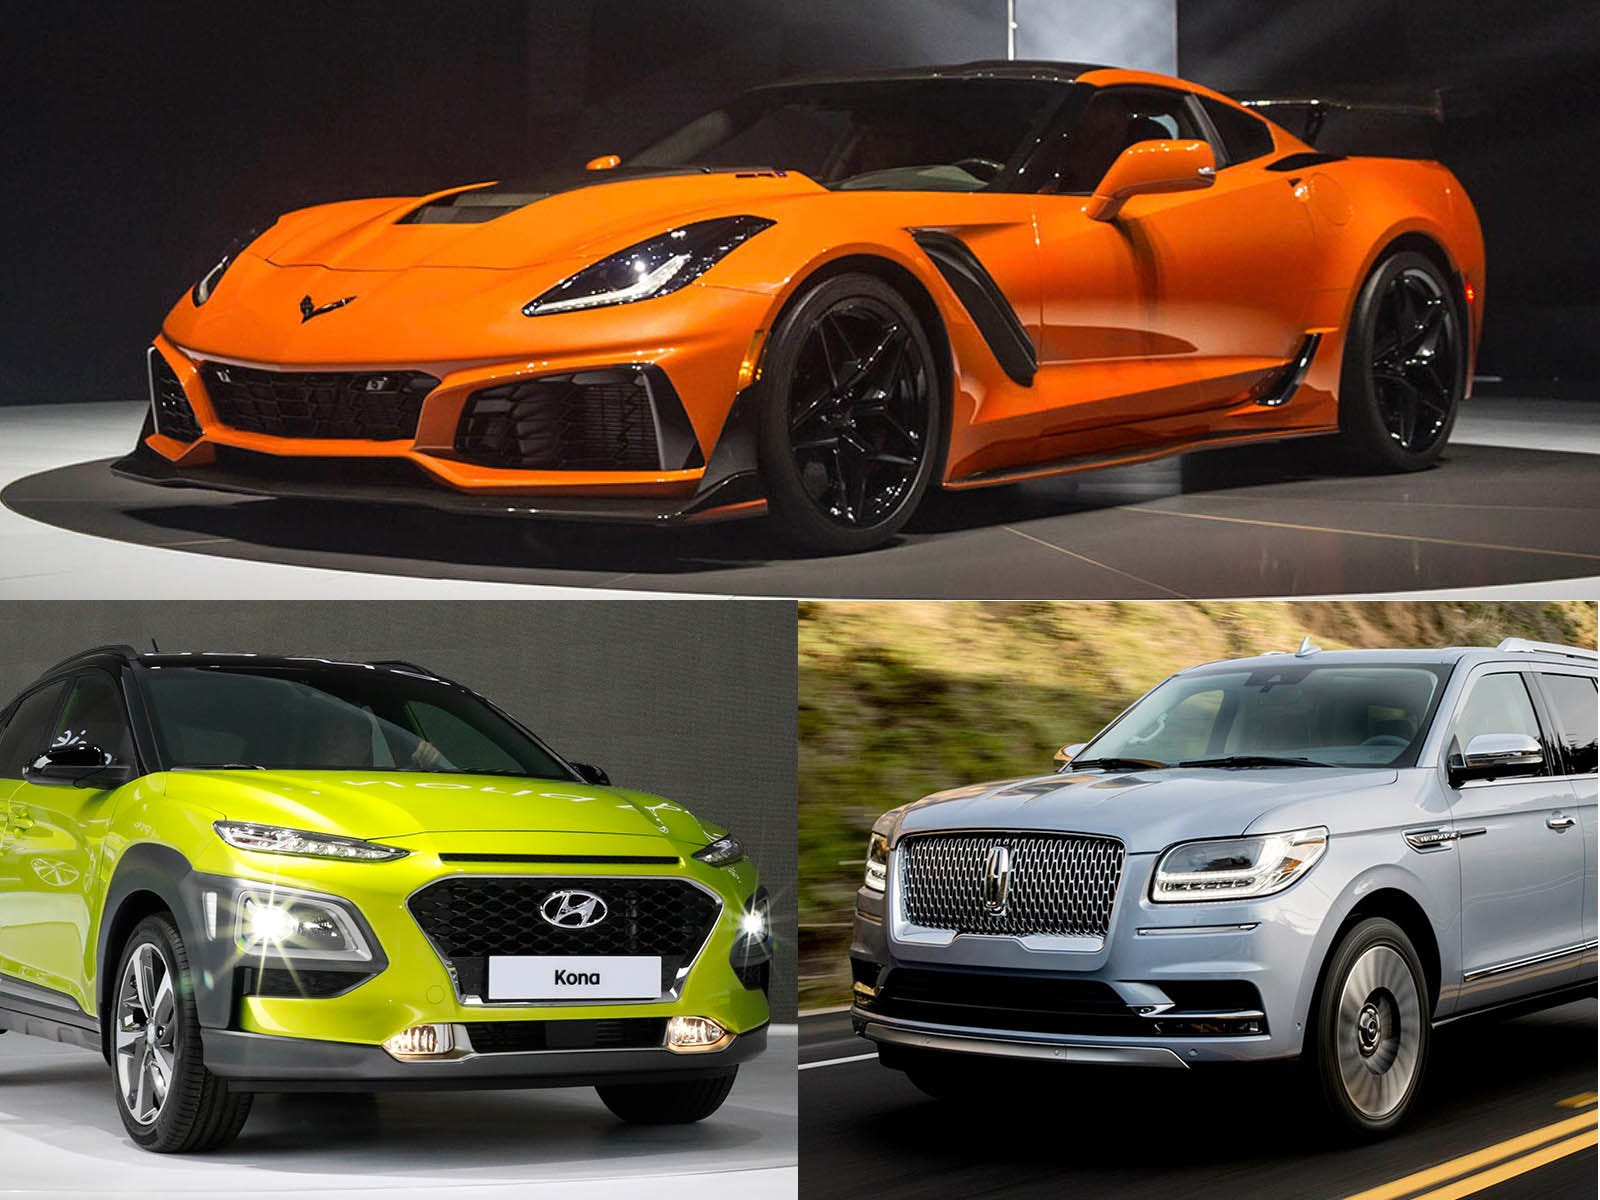 Clockwise from upper left, 2019 Chevrolet Corvette